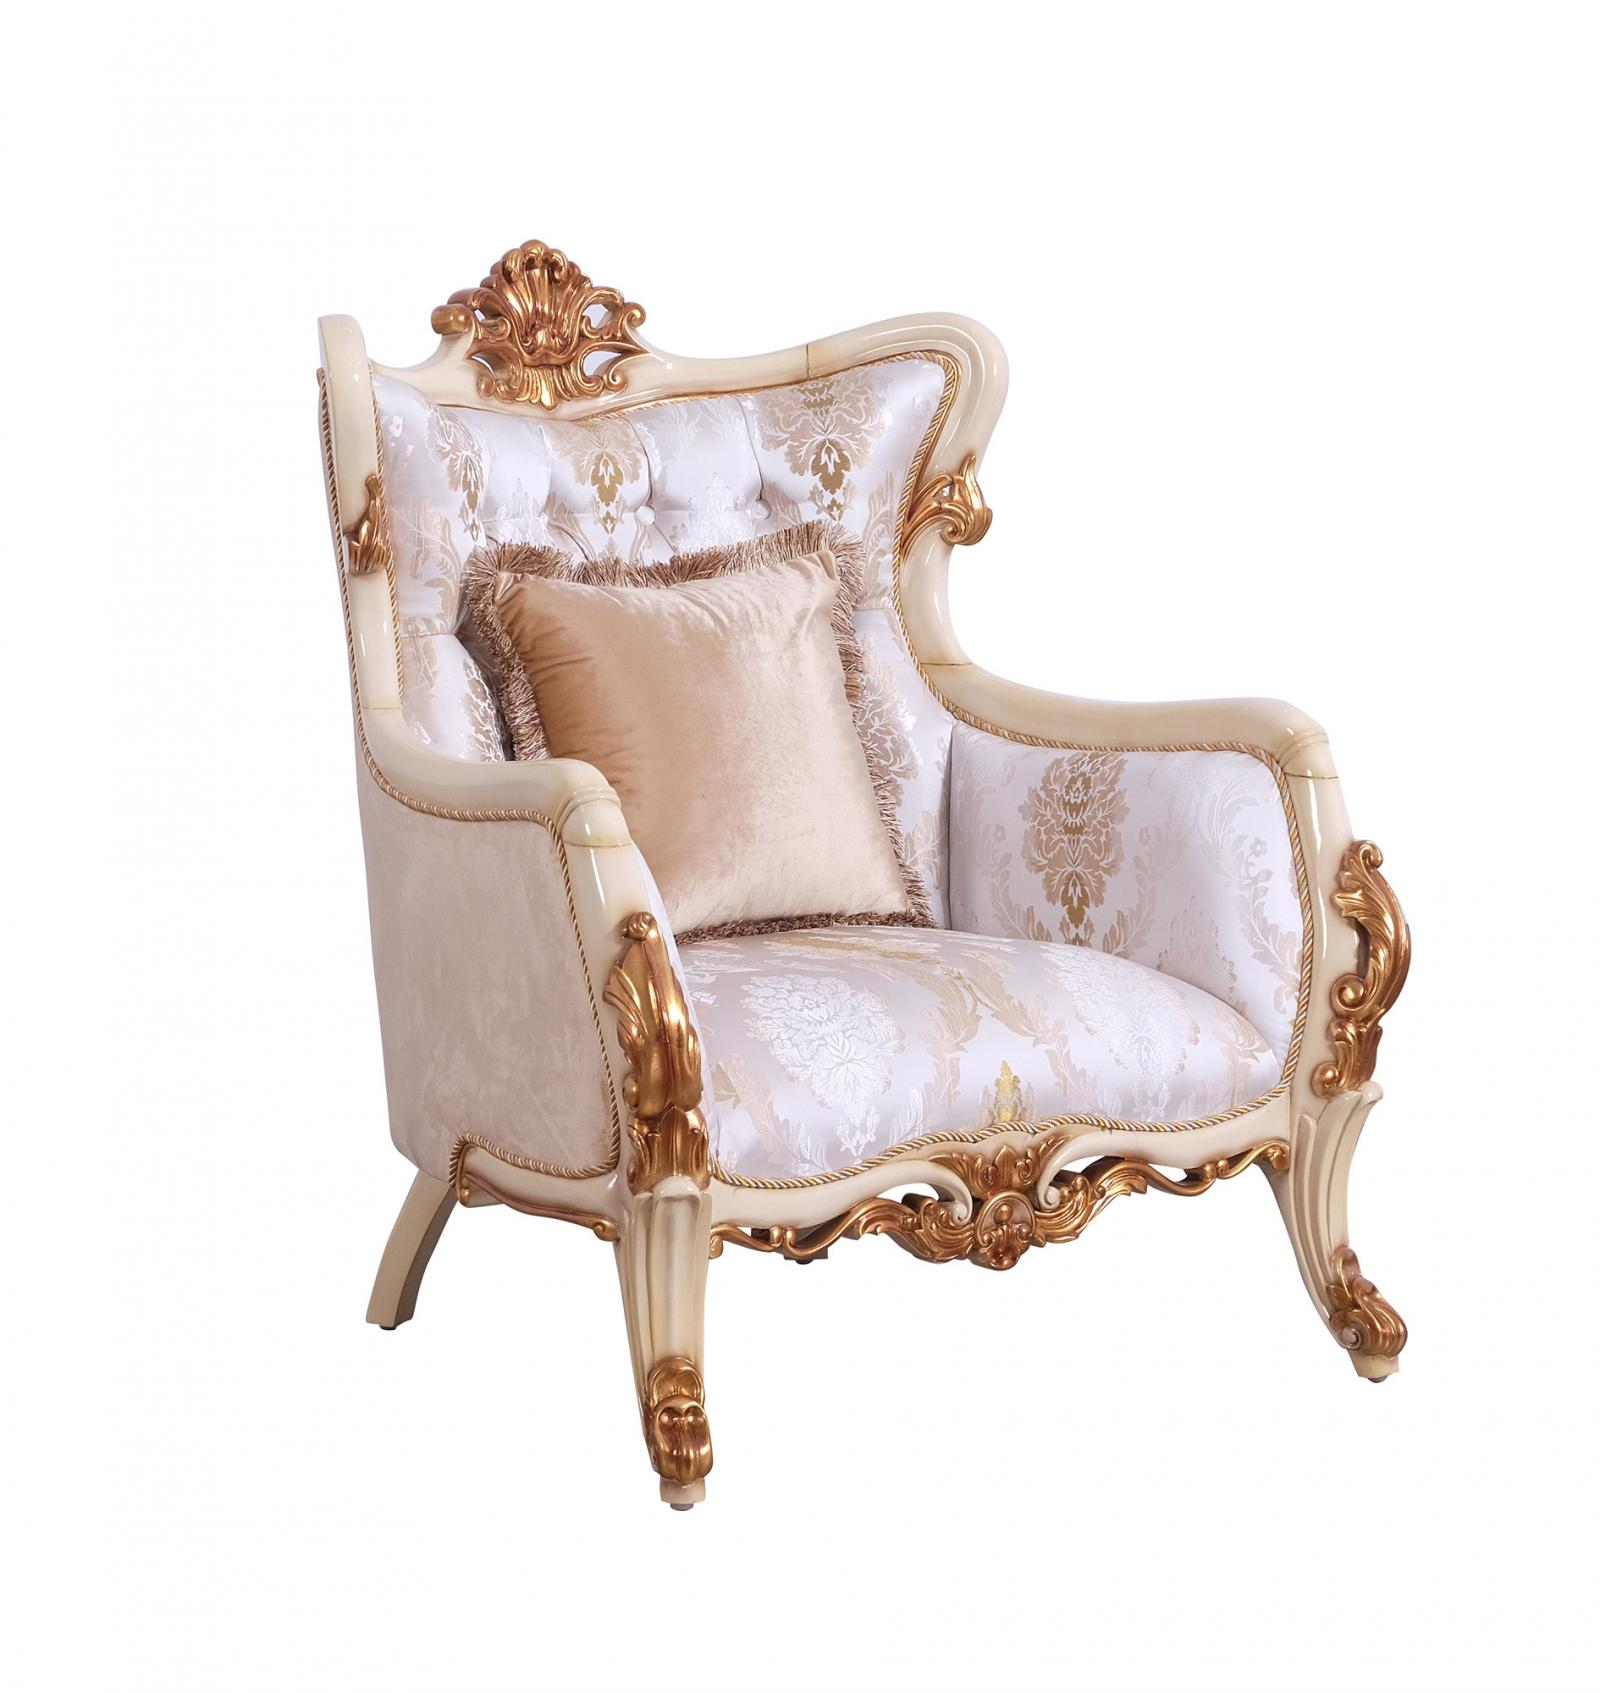 Classic  Traditional Gold  Antique  Pearl Wood  Solid Hardwood and Fabric Arm Chair EUROPEAN FURNITURE  47072-C